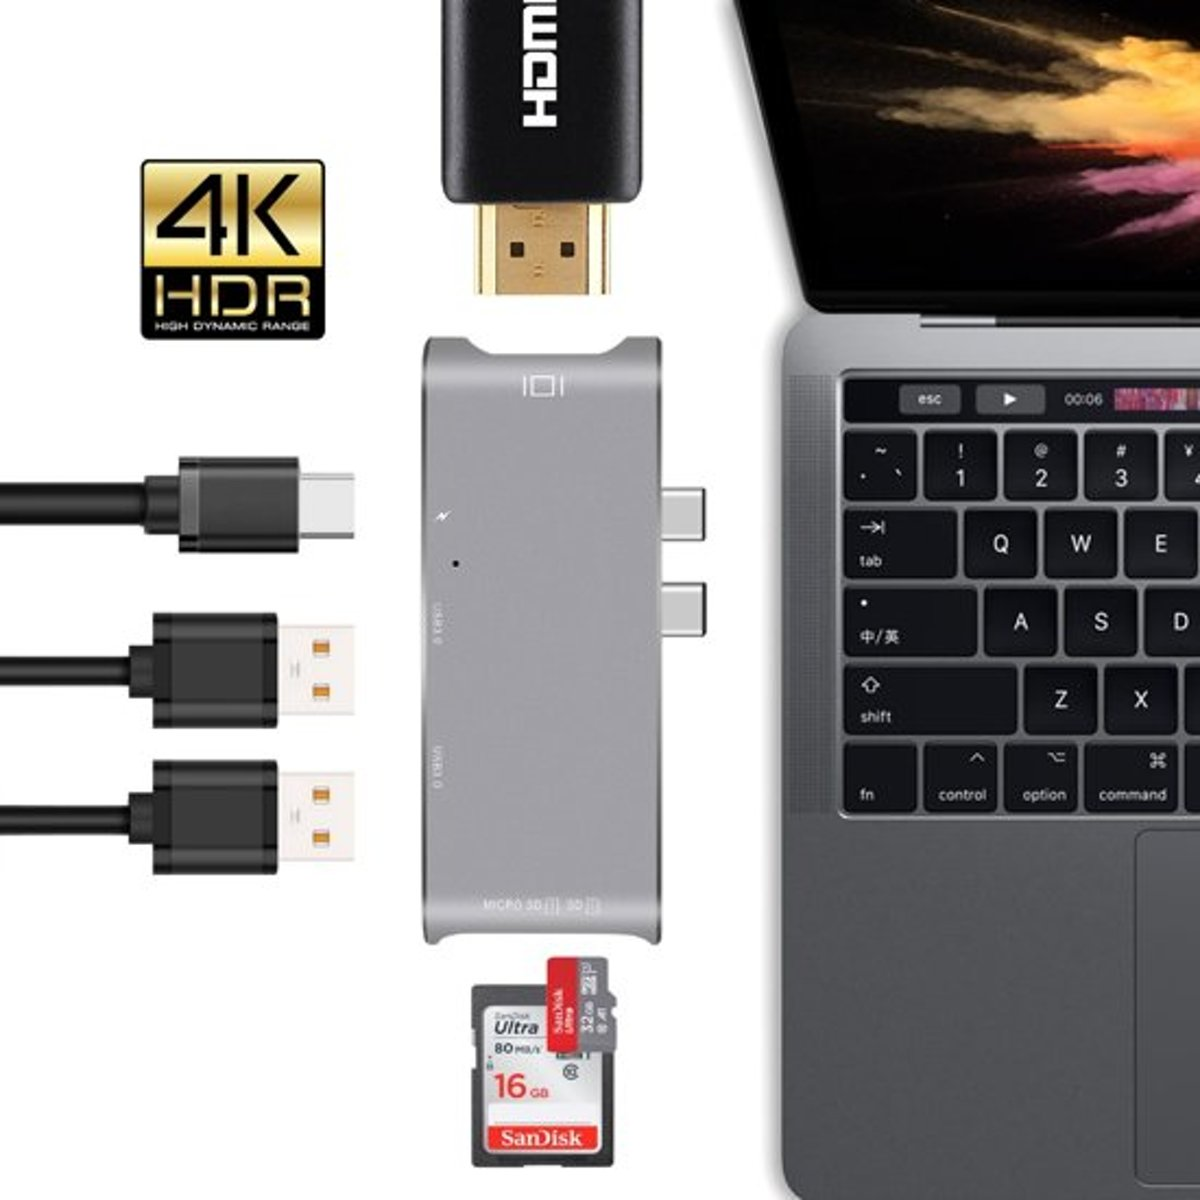 6 in 1 - Aluminium   Thunderbolt 3 - USB-C Adapter   - 4K HDMI - Thunderbolt 3 - Type C   SD/Micro SD - Lezer Type C Poort Voor Apple Macbook Pro / Macbook Pro 2016 / 2017 / 2018 - Space Grey